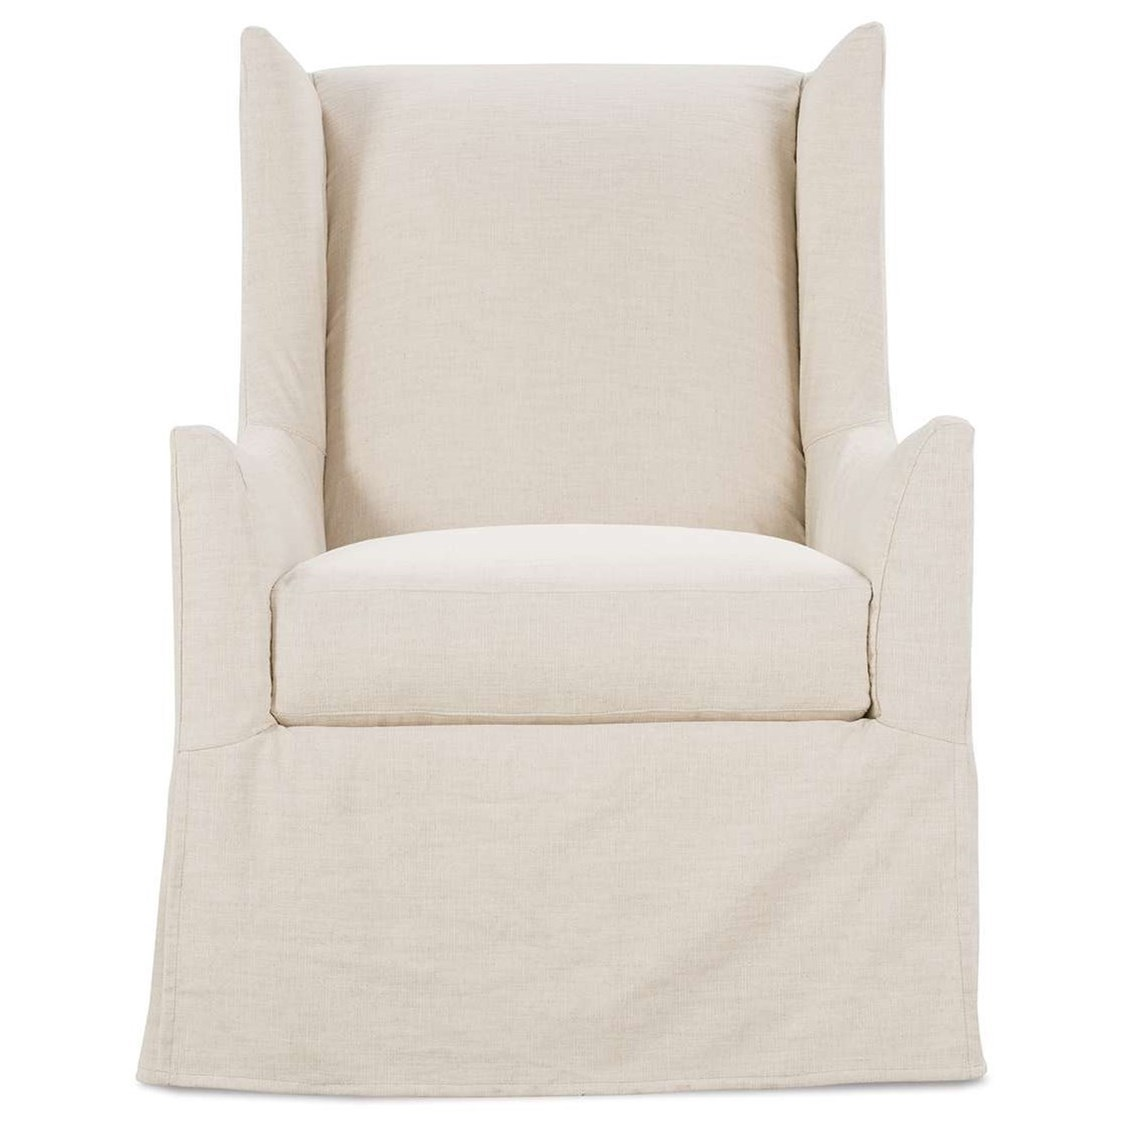 Ellory Slipcovered Swivel Chair by Robin Bruce at Steger's Furniture